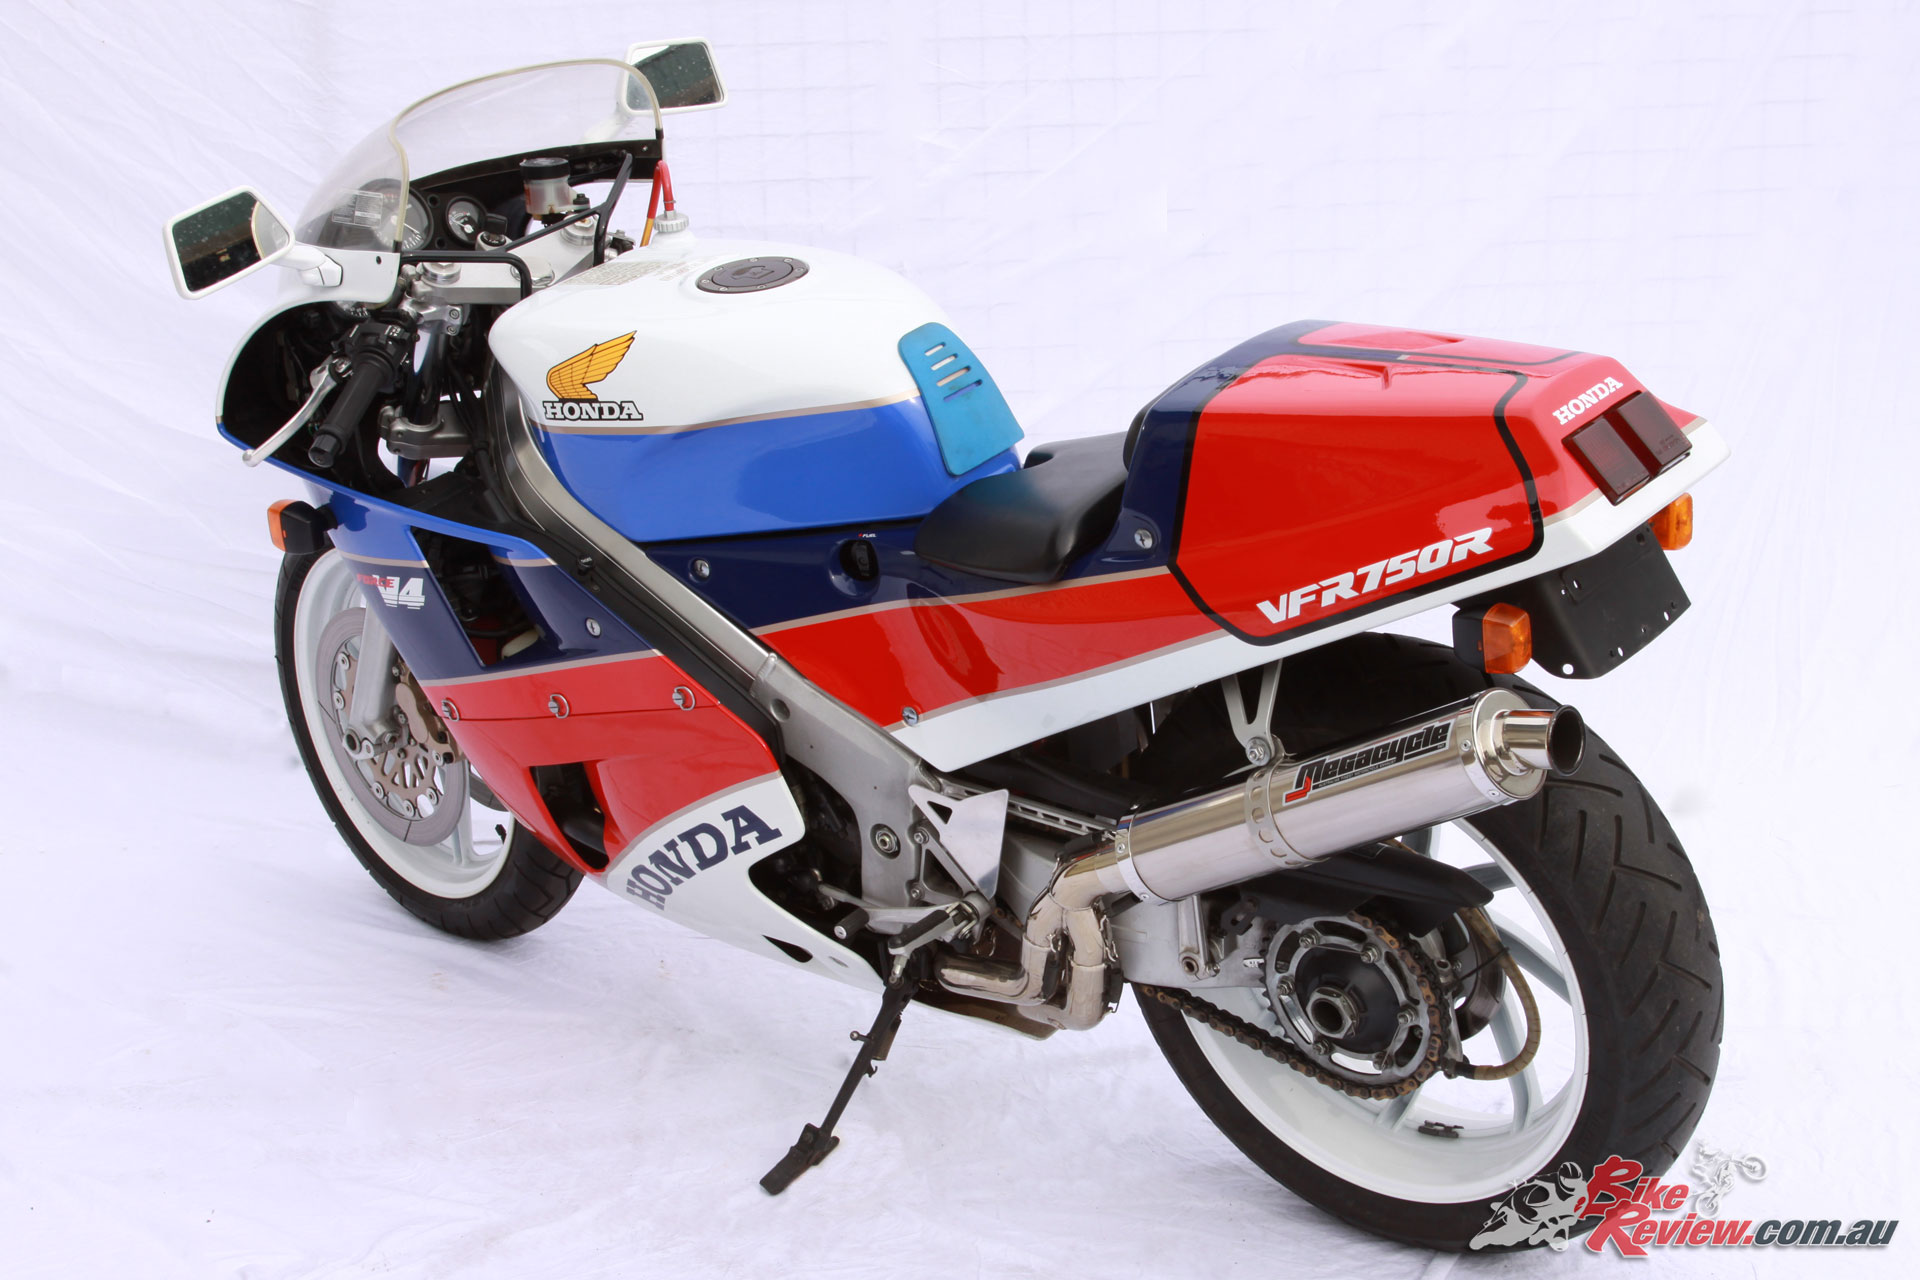 Classic Collectable Honda Vfr750r Rc30 Bike Review